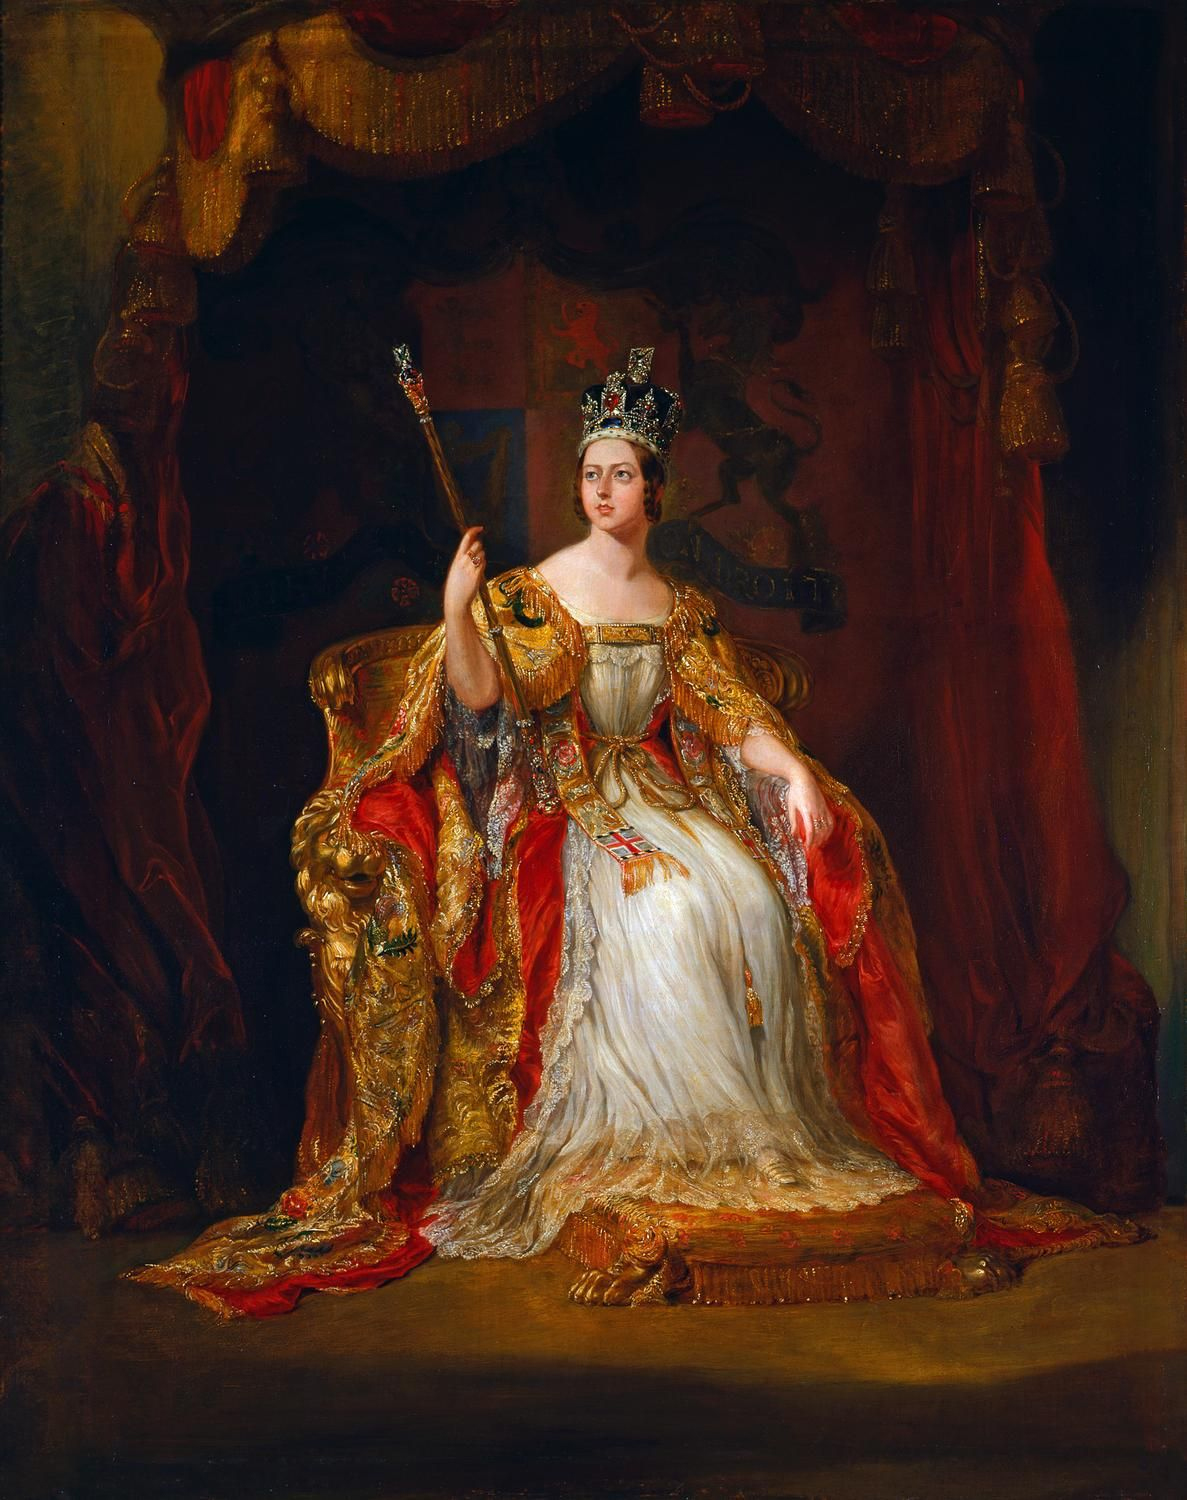 The alexandrina victoria on the british throne throughout the history of england